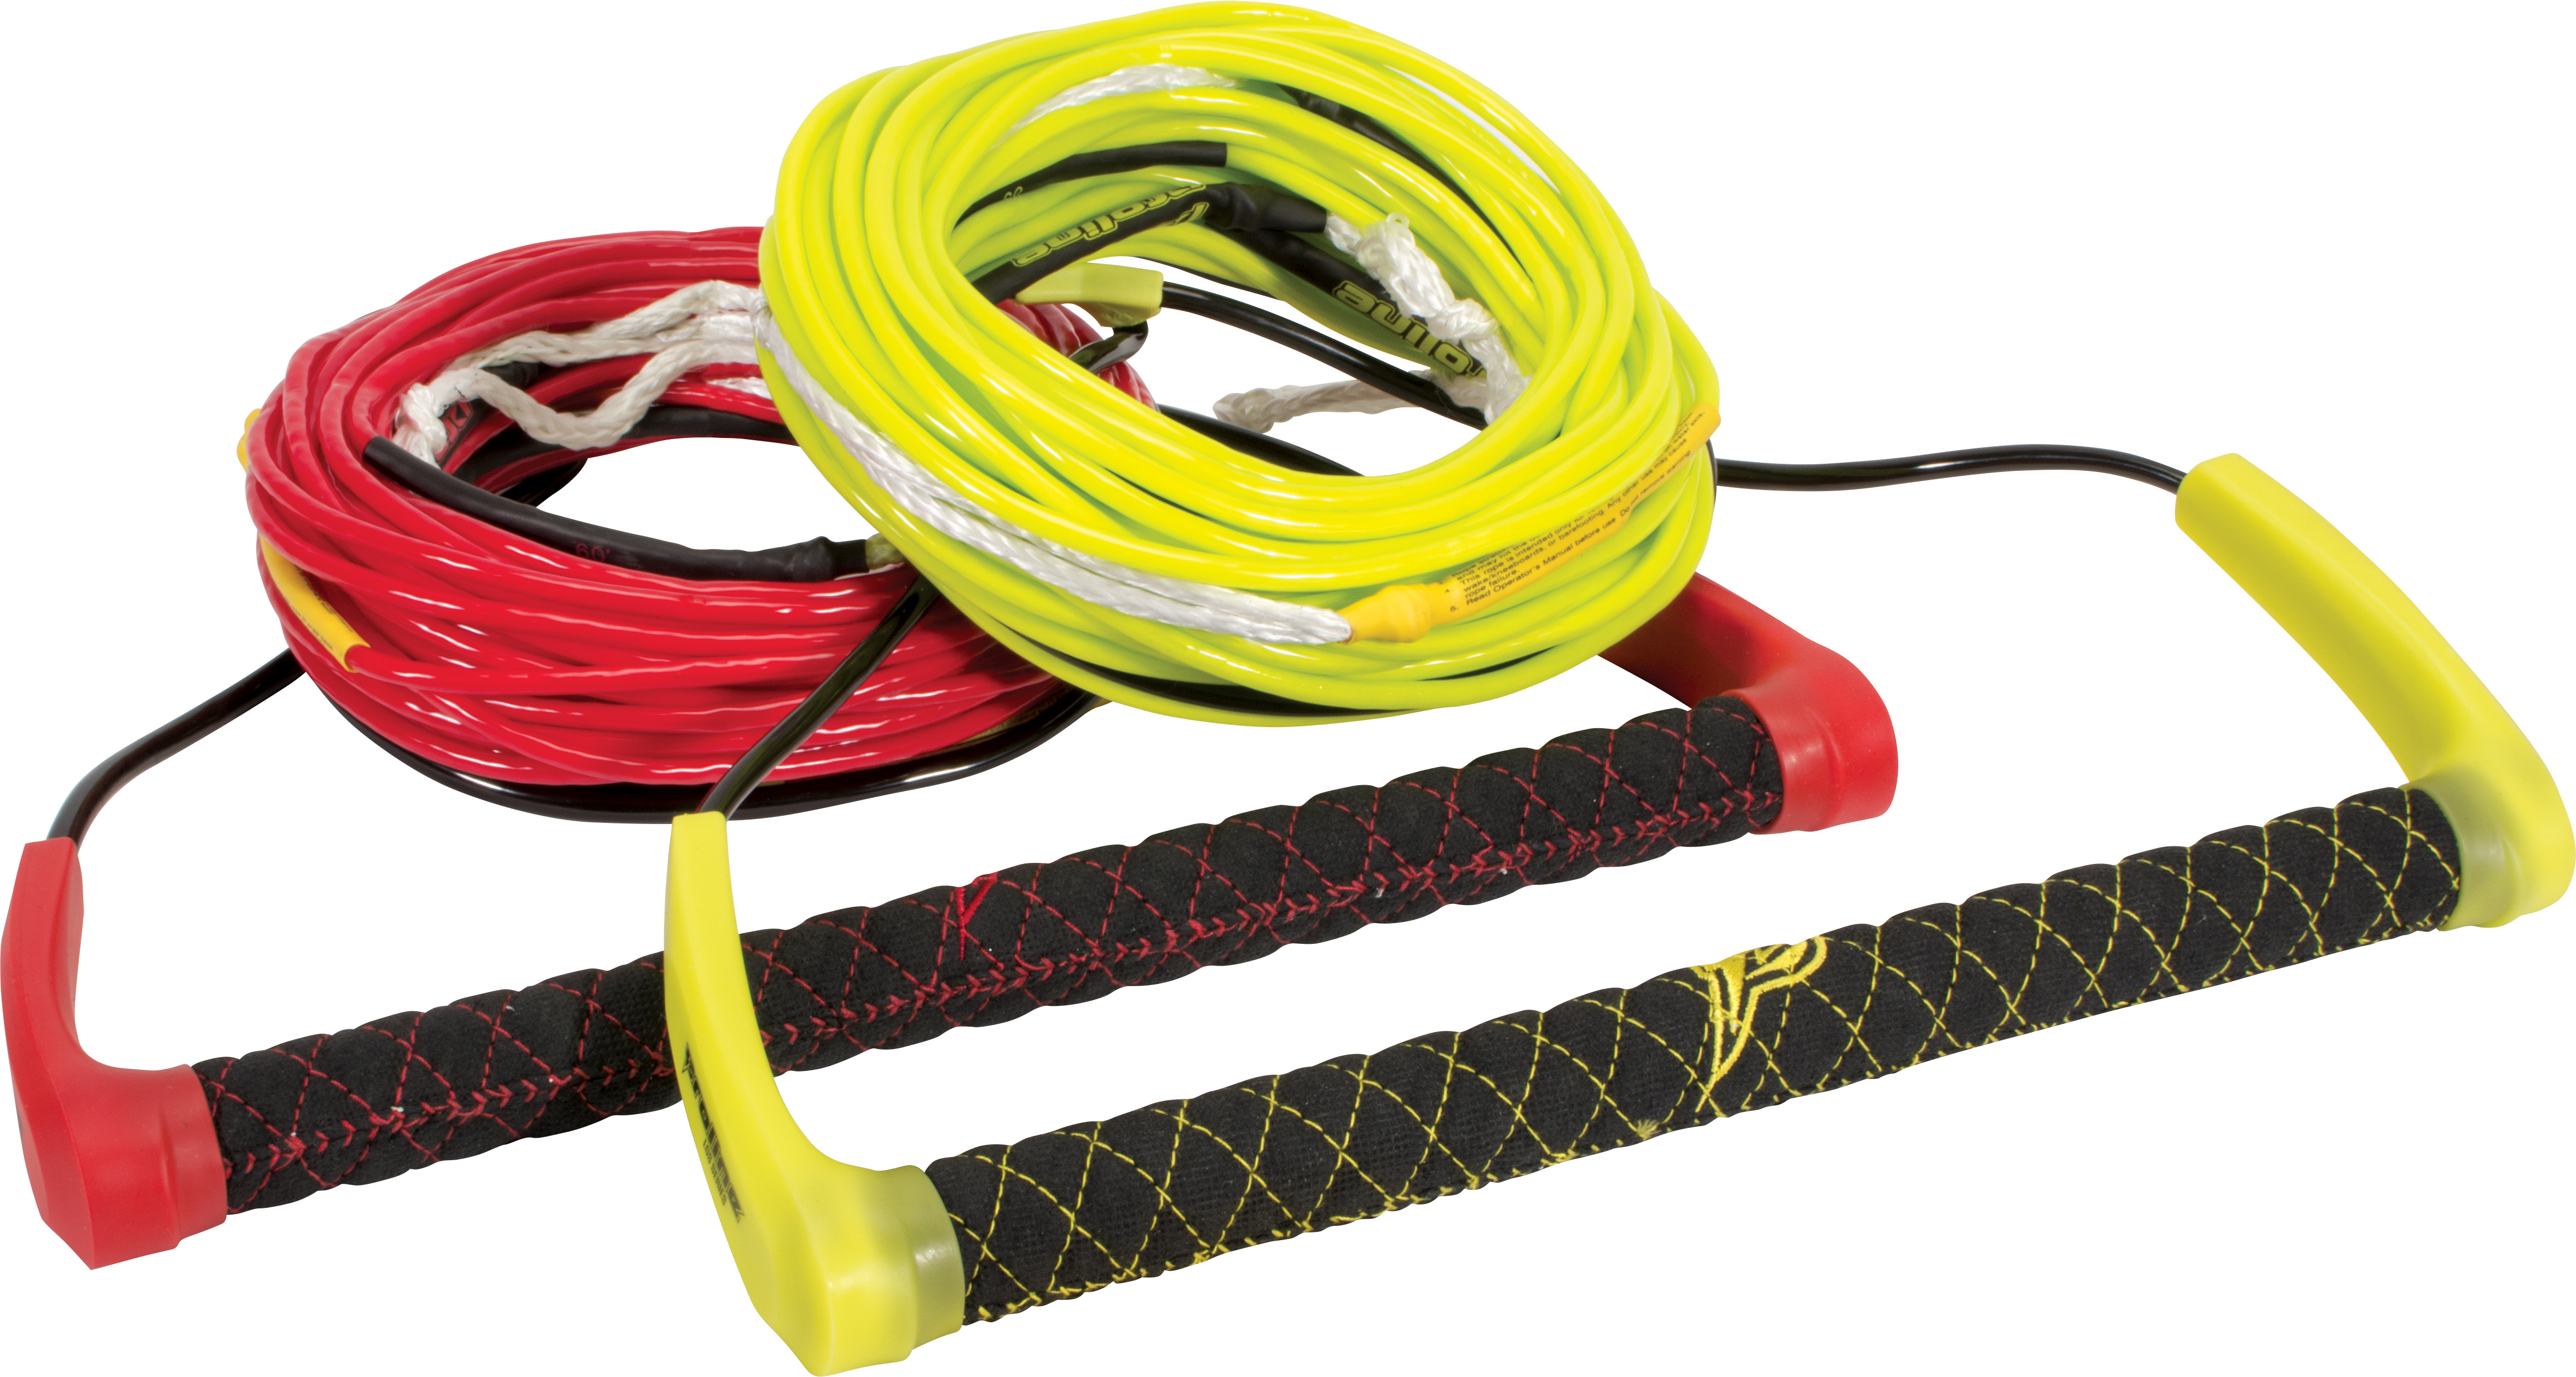 LGS HANDLE W/75' DYNEEMA MAINLINE PACKAGE CONNELLY 2018